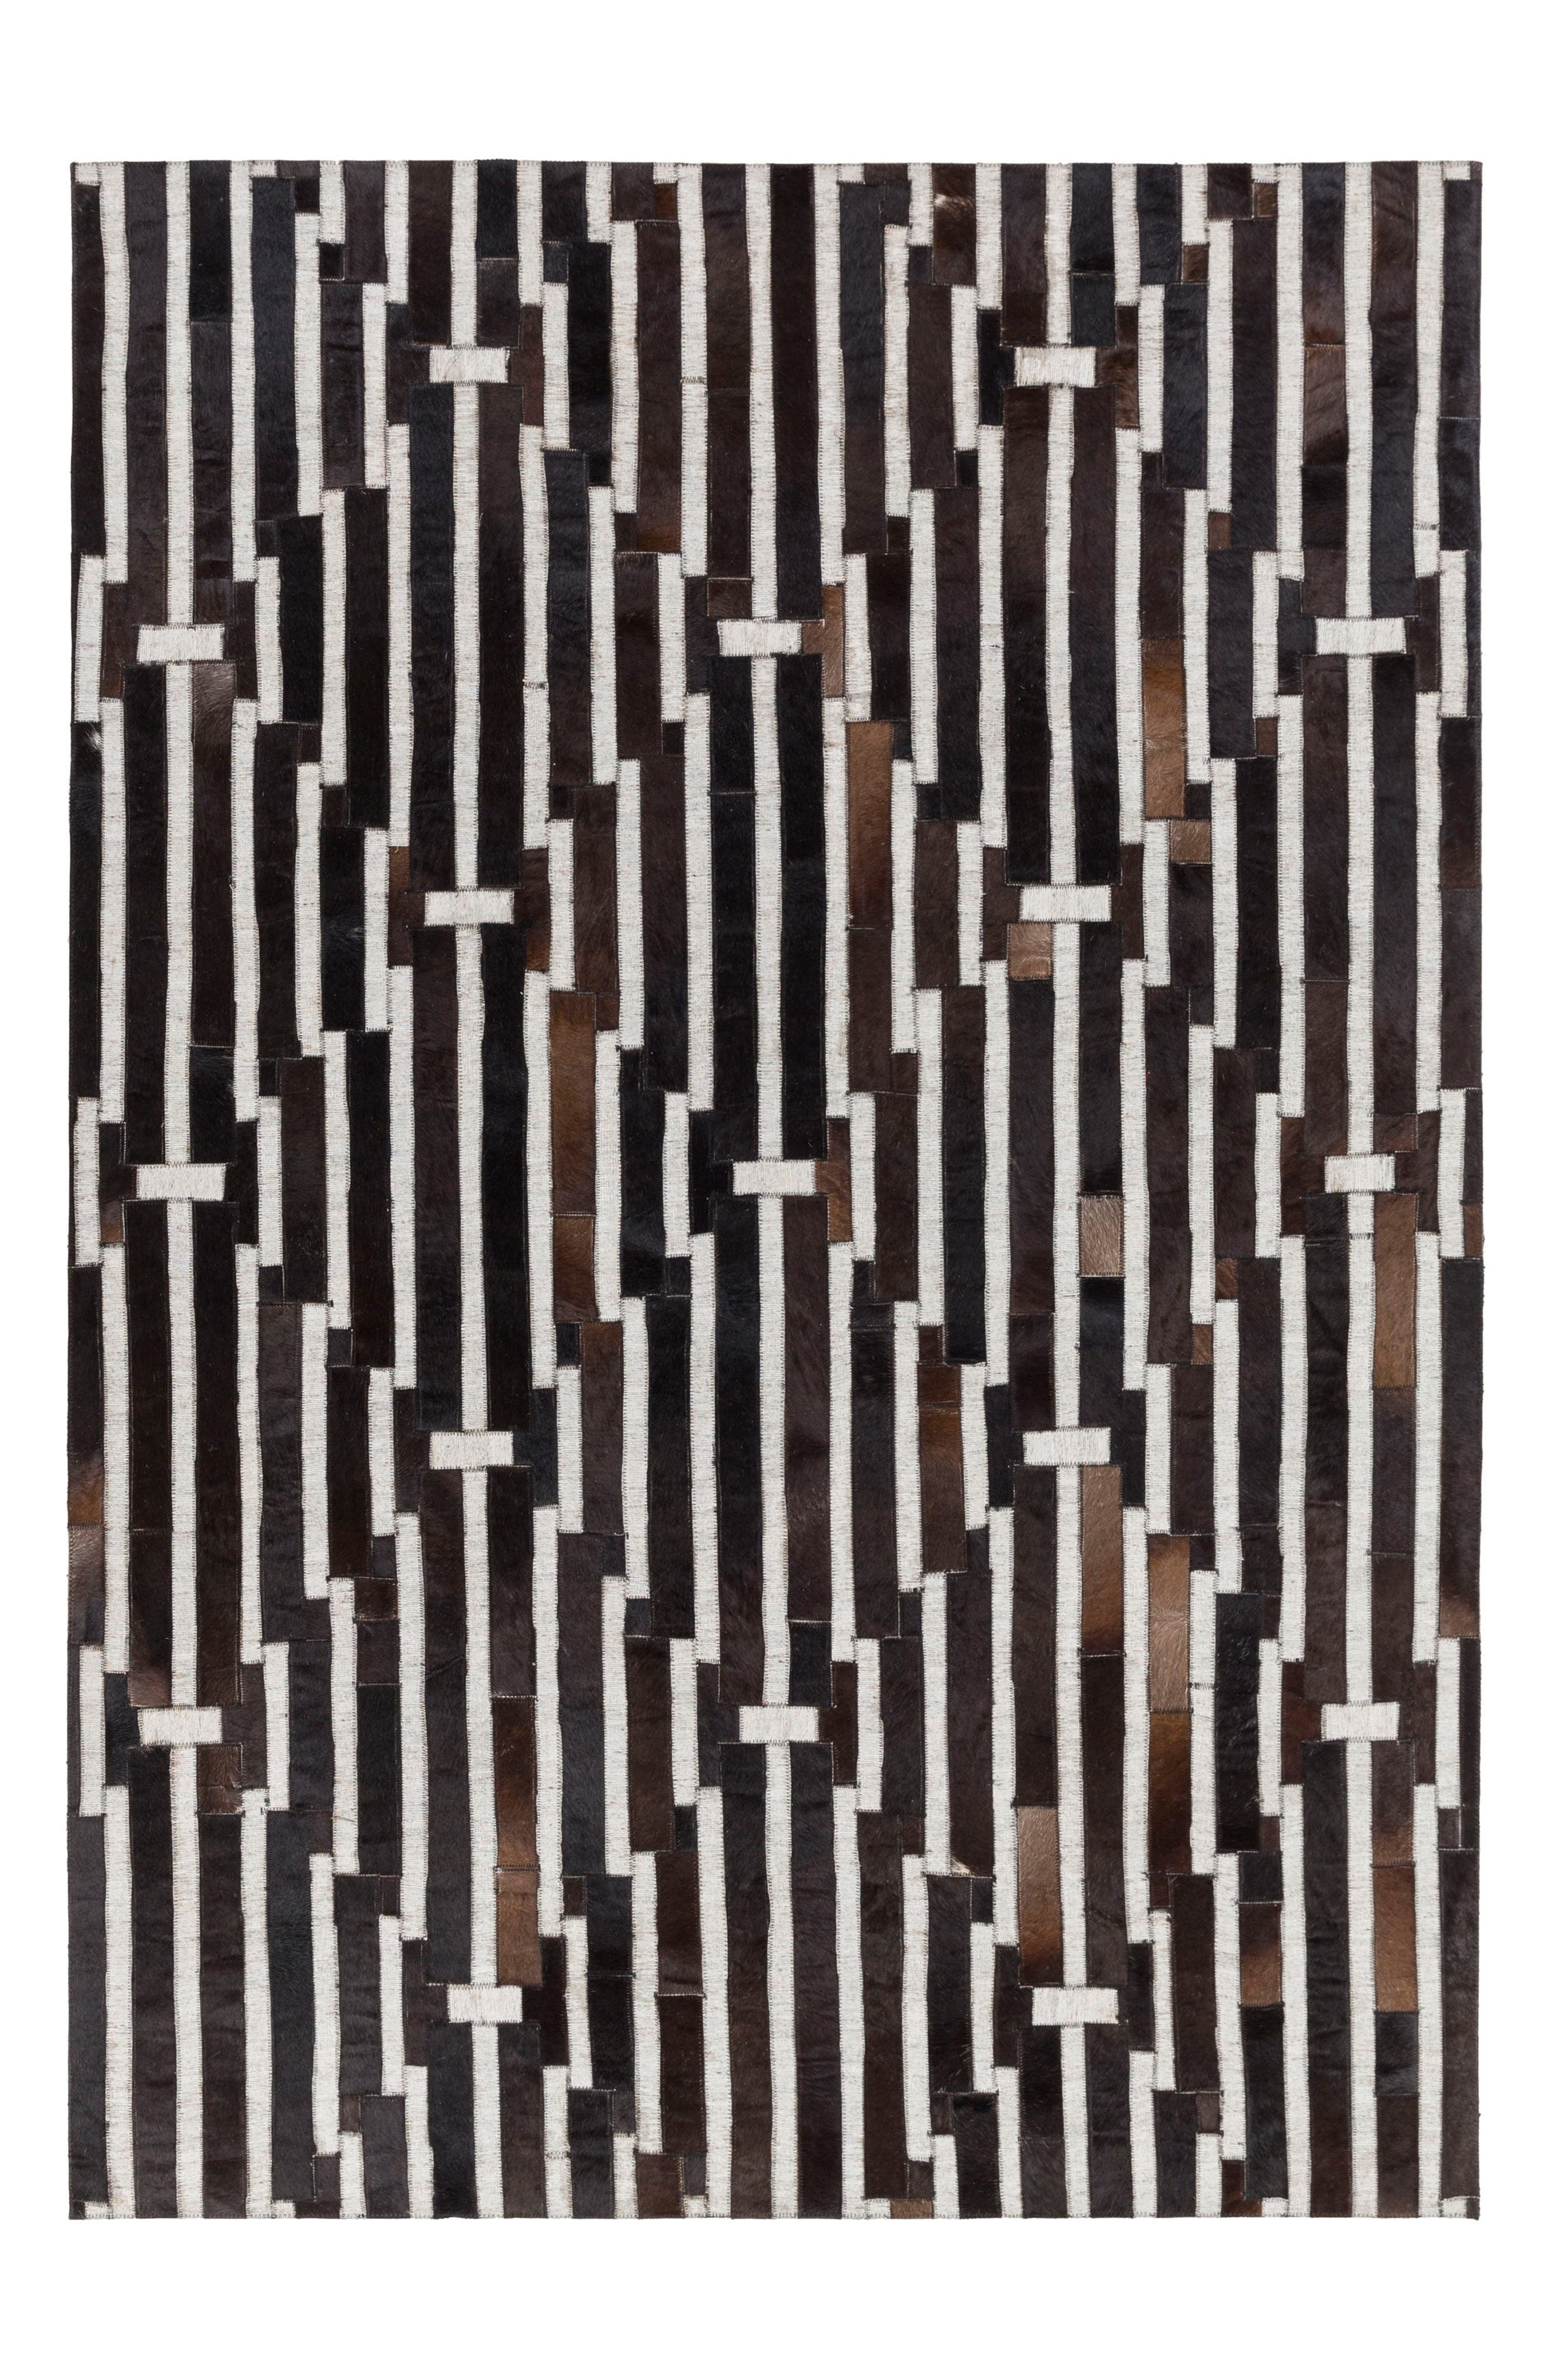 Medora Gate Hand Stitched Rug,                             Main thumbnail 1, color,                             001